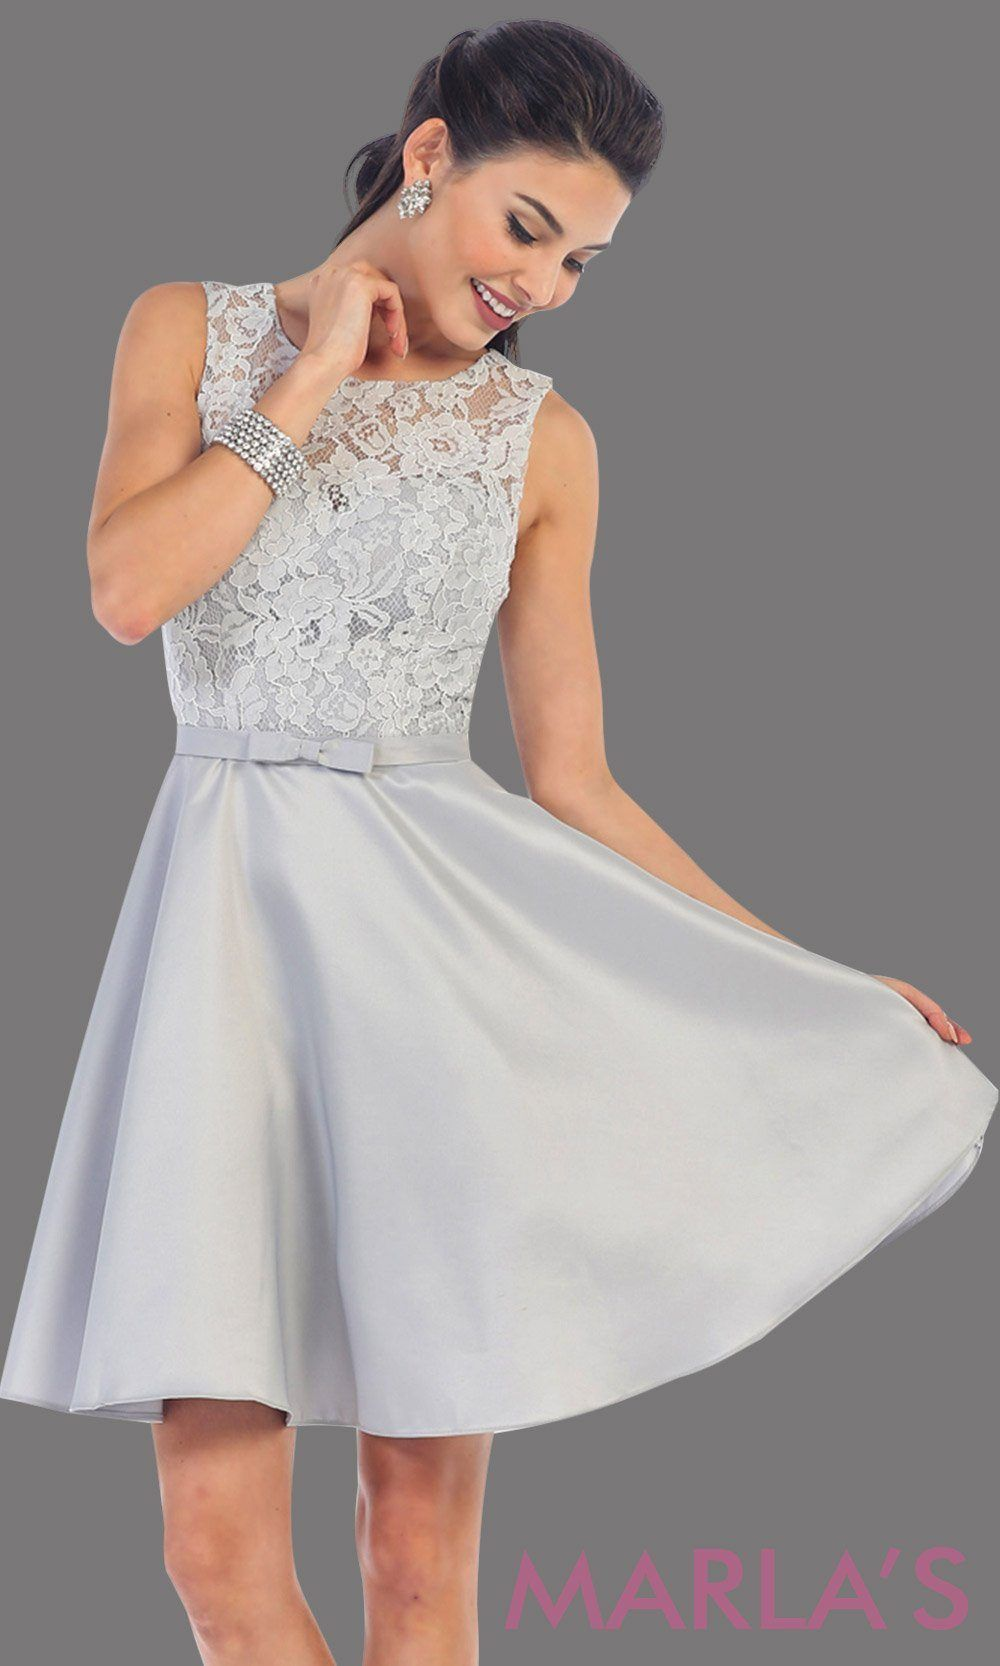 Short simple semi formal ligth gray dress with lace bodice and satin skirt.  Light silver dress is perfect for grade 8 grad 56ef55ce7